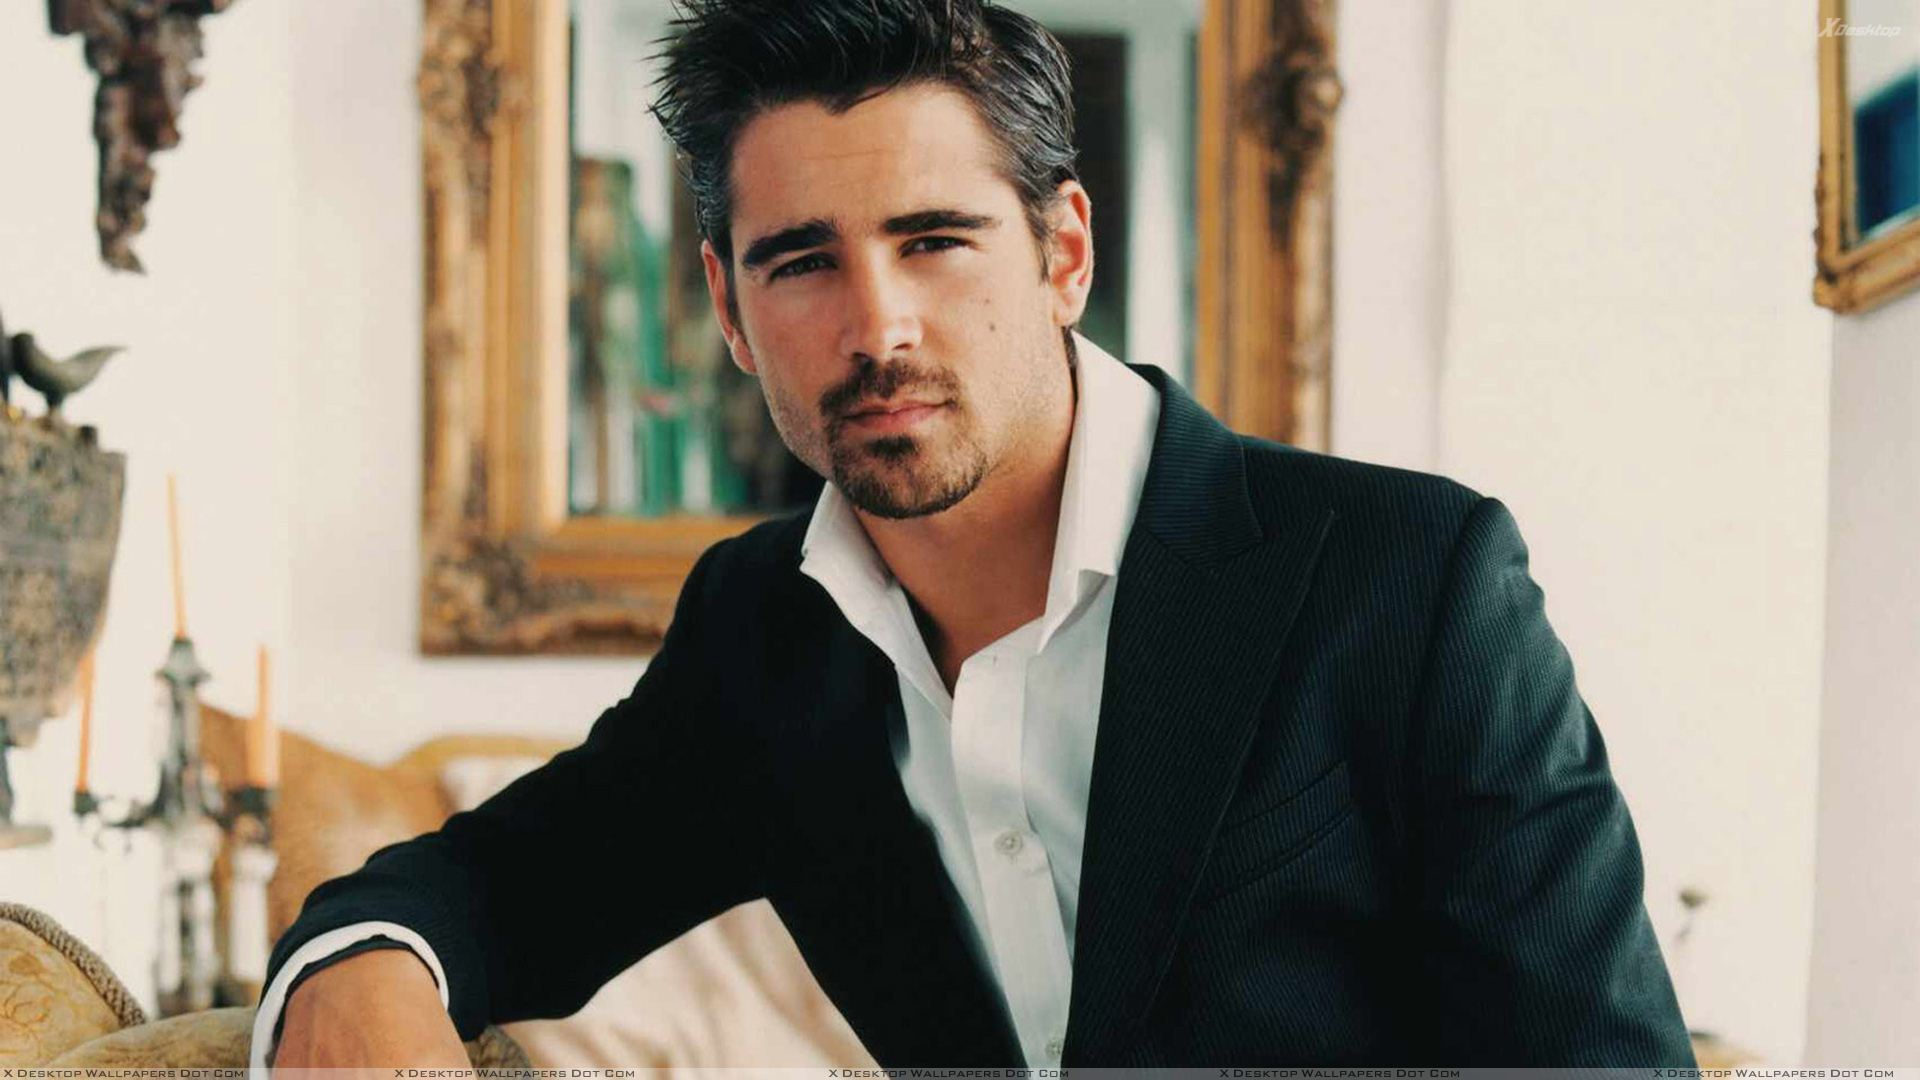 Colin Farrell Wallpapers, Photos & Images in HD